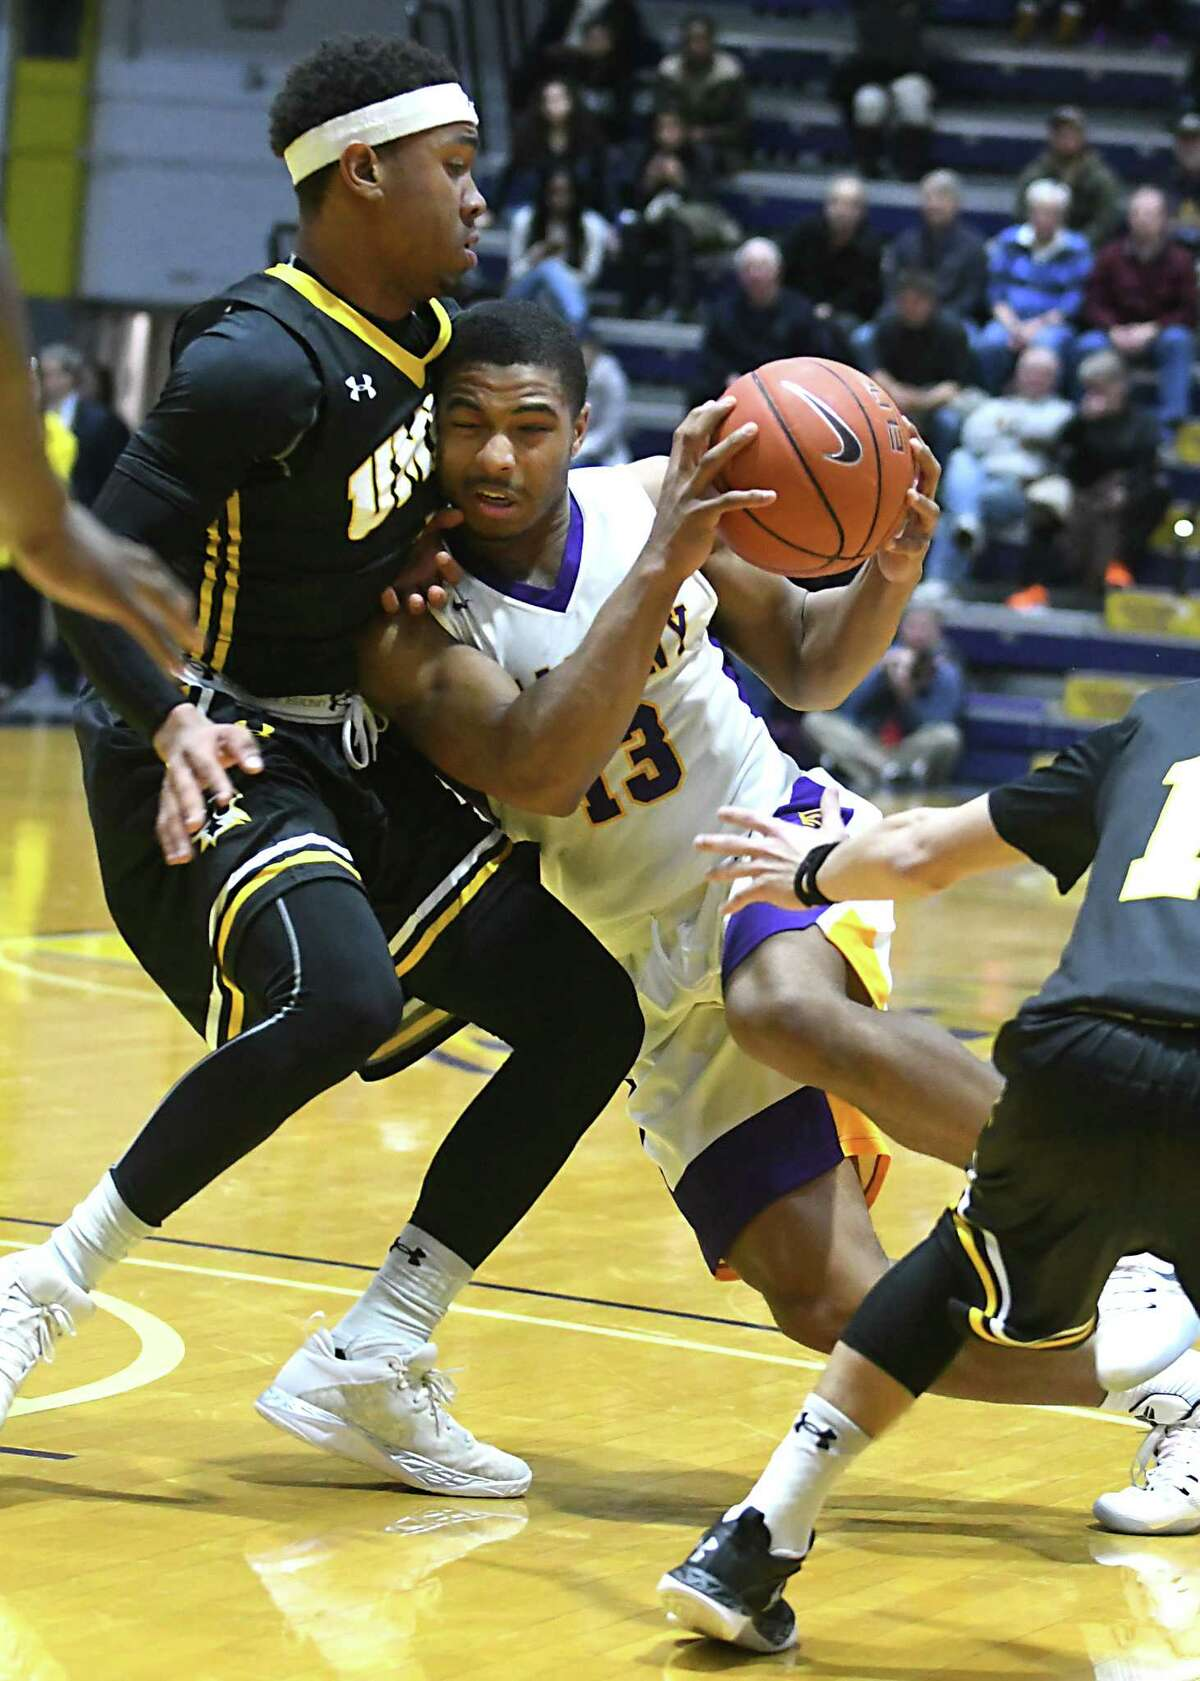 University at Albany's David Nichols is defended by UMBC's Rodney Elliot as he drives to the basket during a basketball game at the SEFCU Arena on Wednesday, Feb. 15, 2017 in Albany, N.Y. (Lori Van Buren / Times Union)